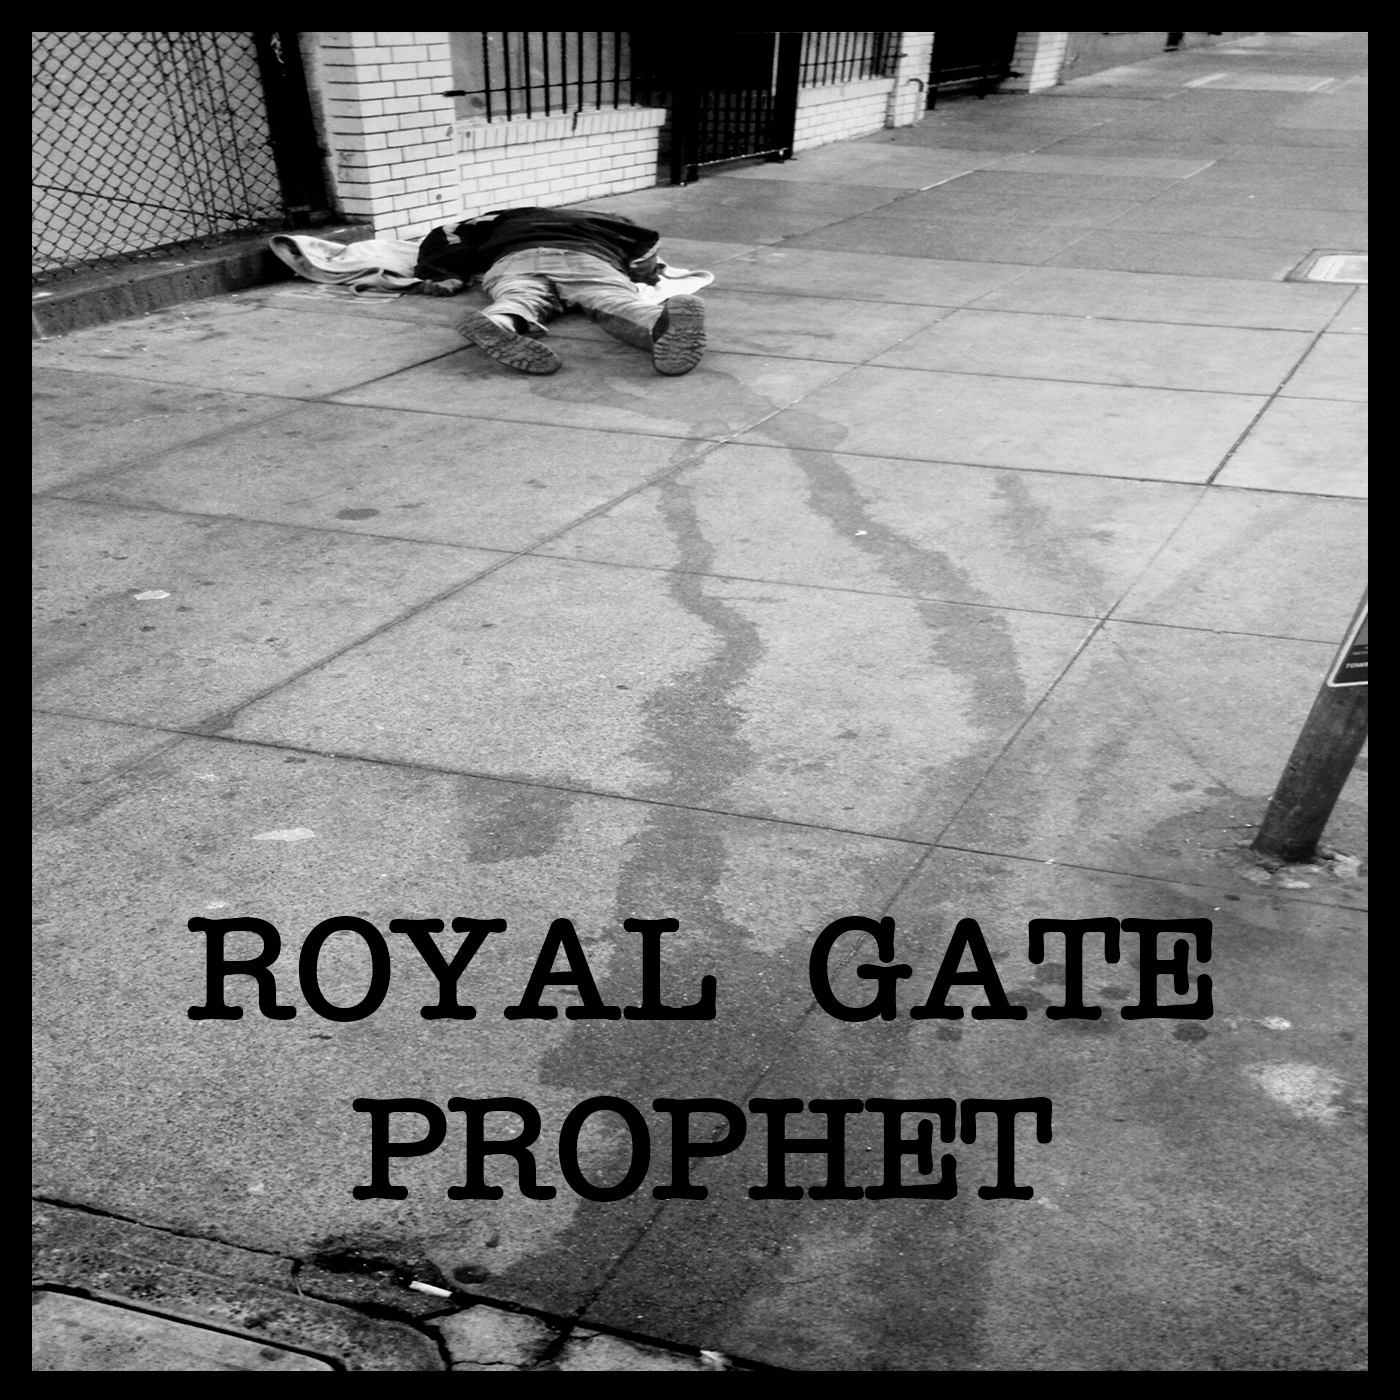 royal gate prophet - st.jpg